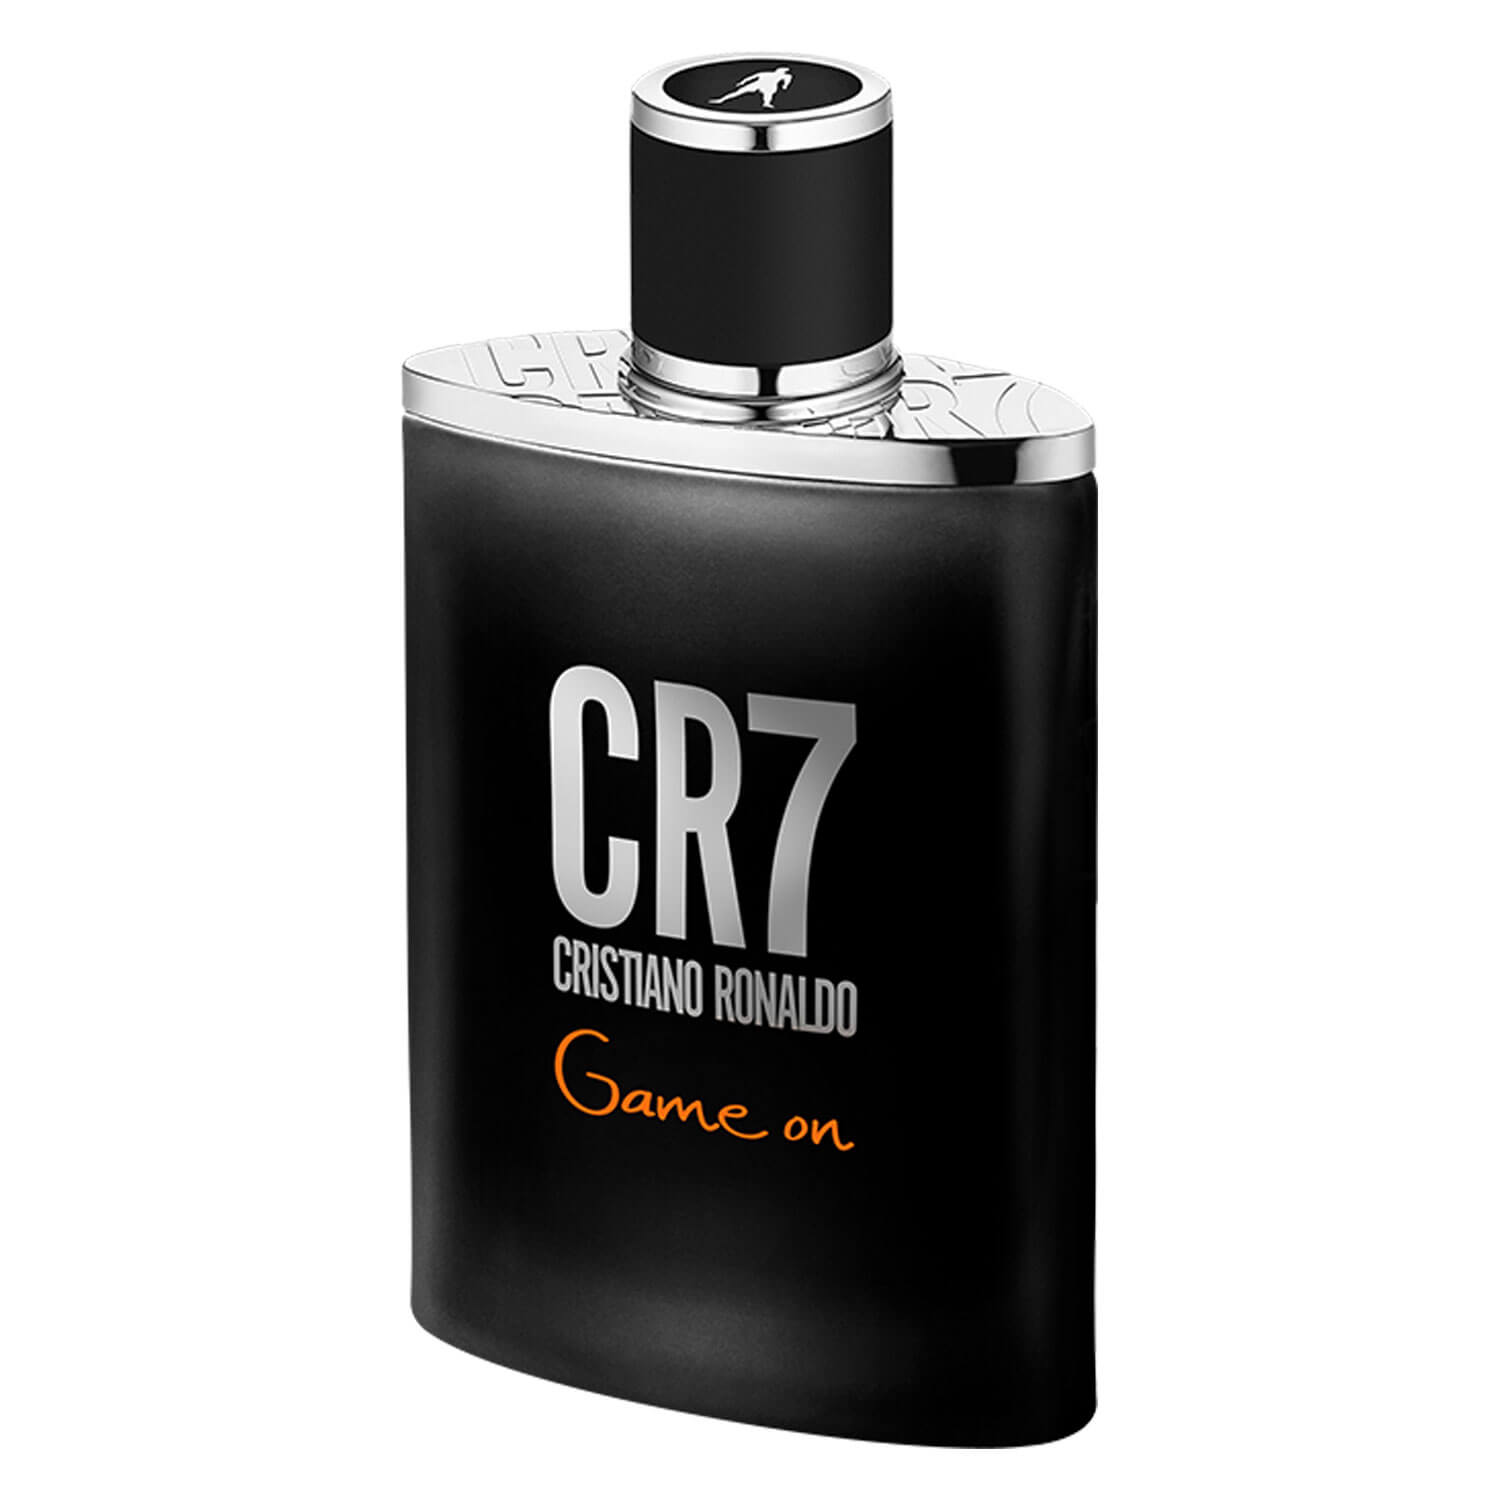 CR7 Cristiano Ronaldo - Game On Eau de Toilette